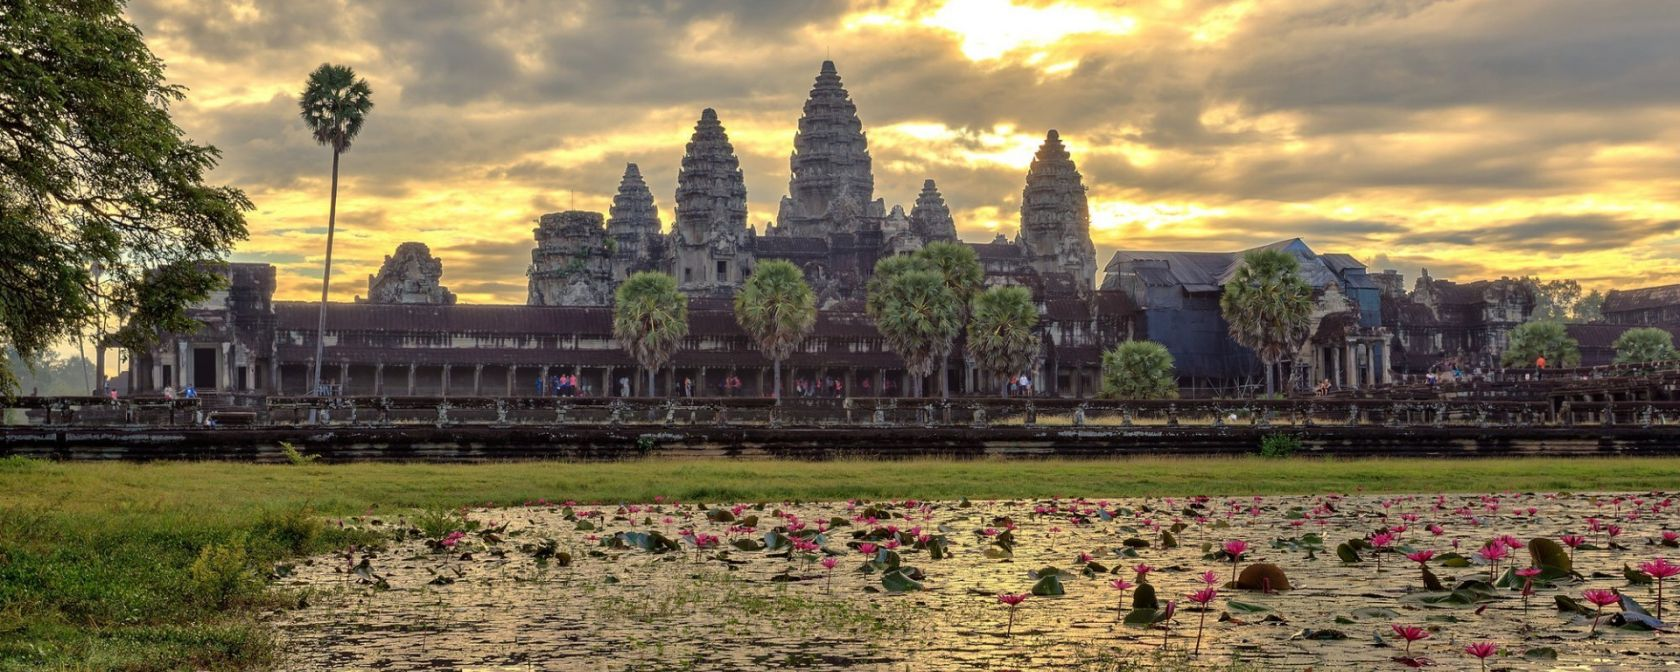 Cambodia Trip & Vacation Ideas